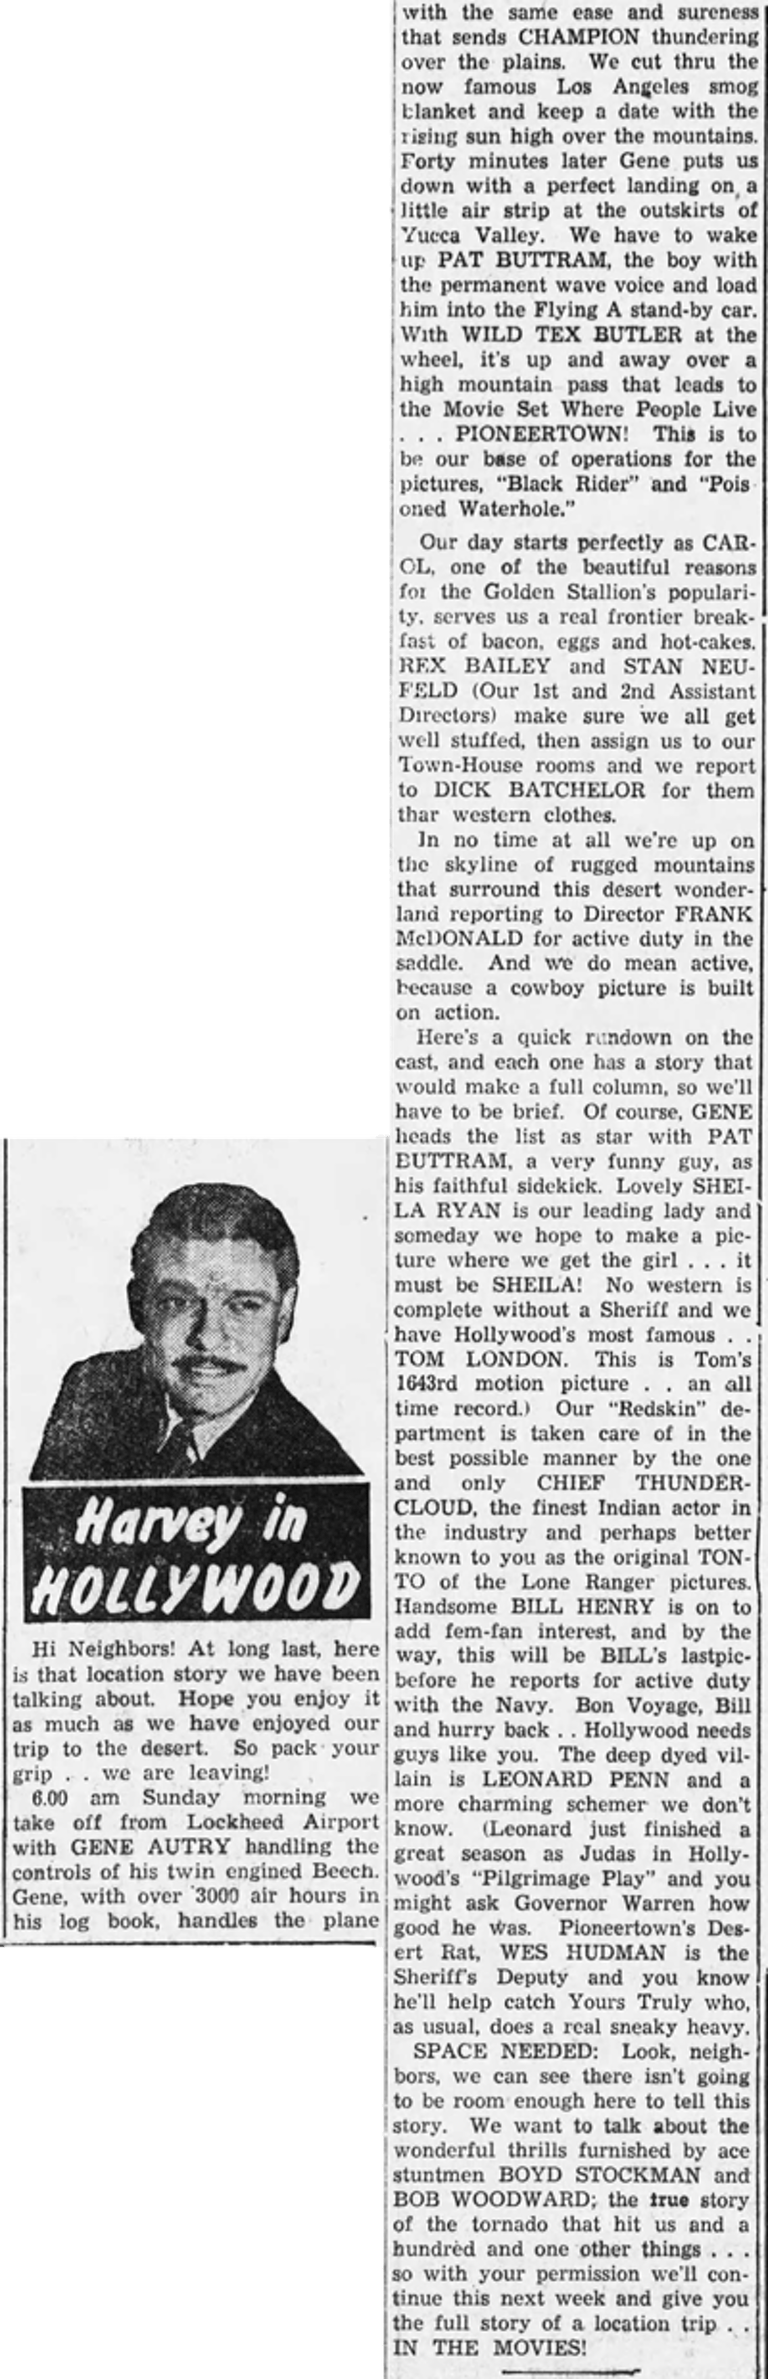 Harvey in Hollywood Sept. 4, 1950